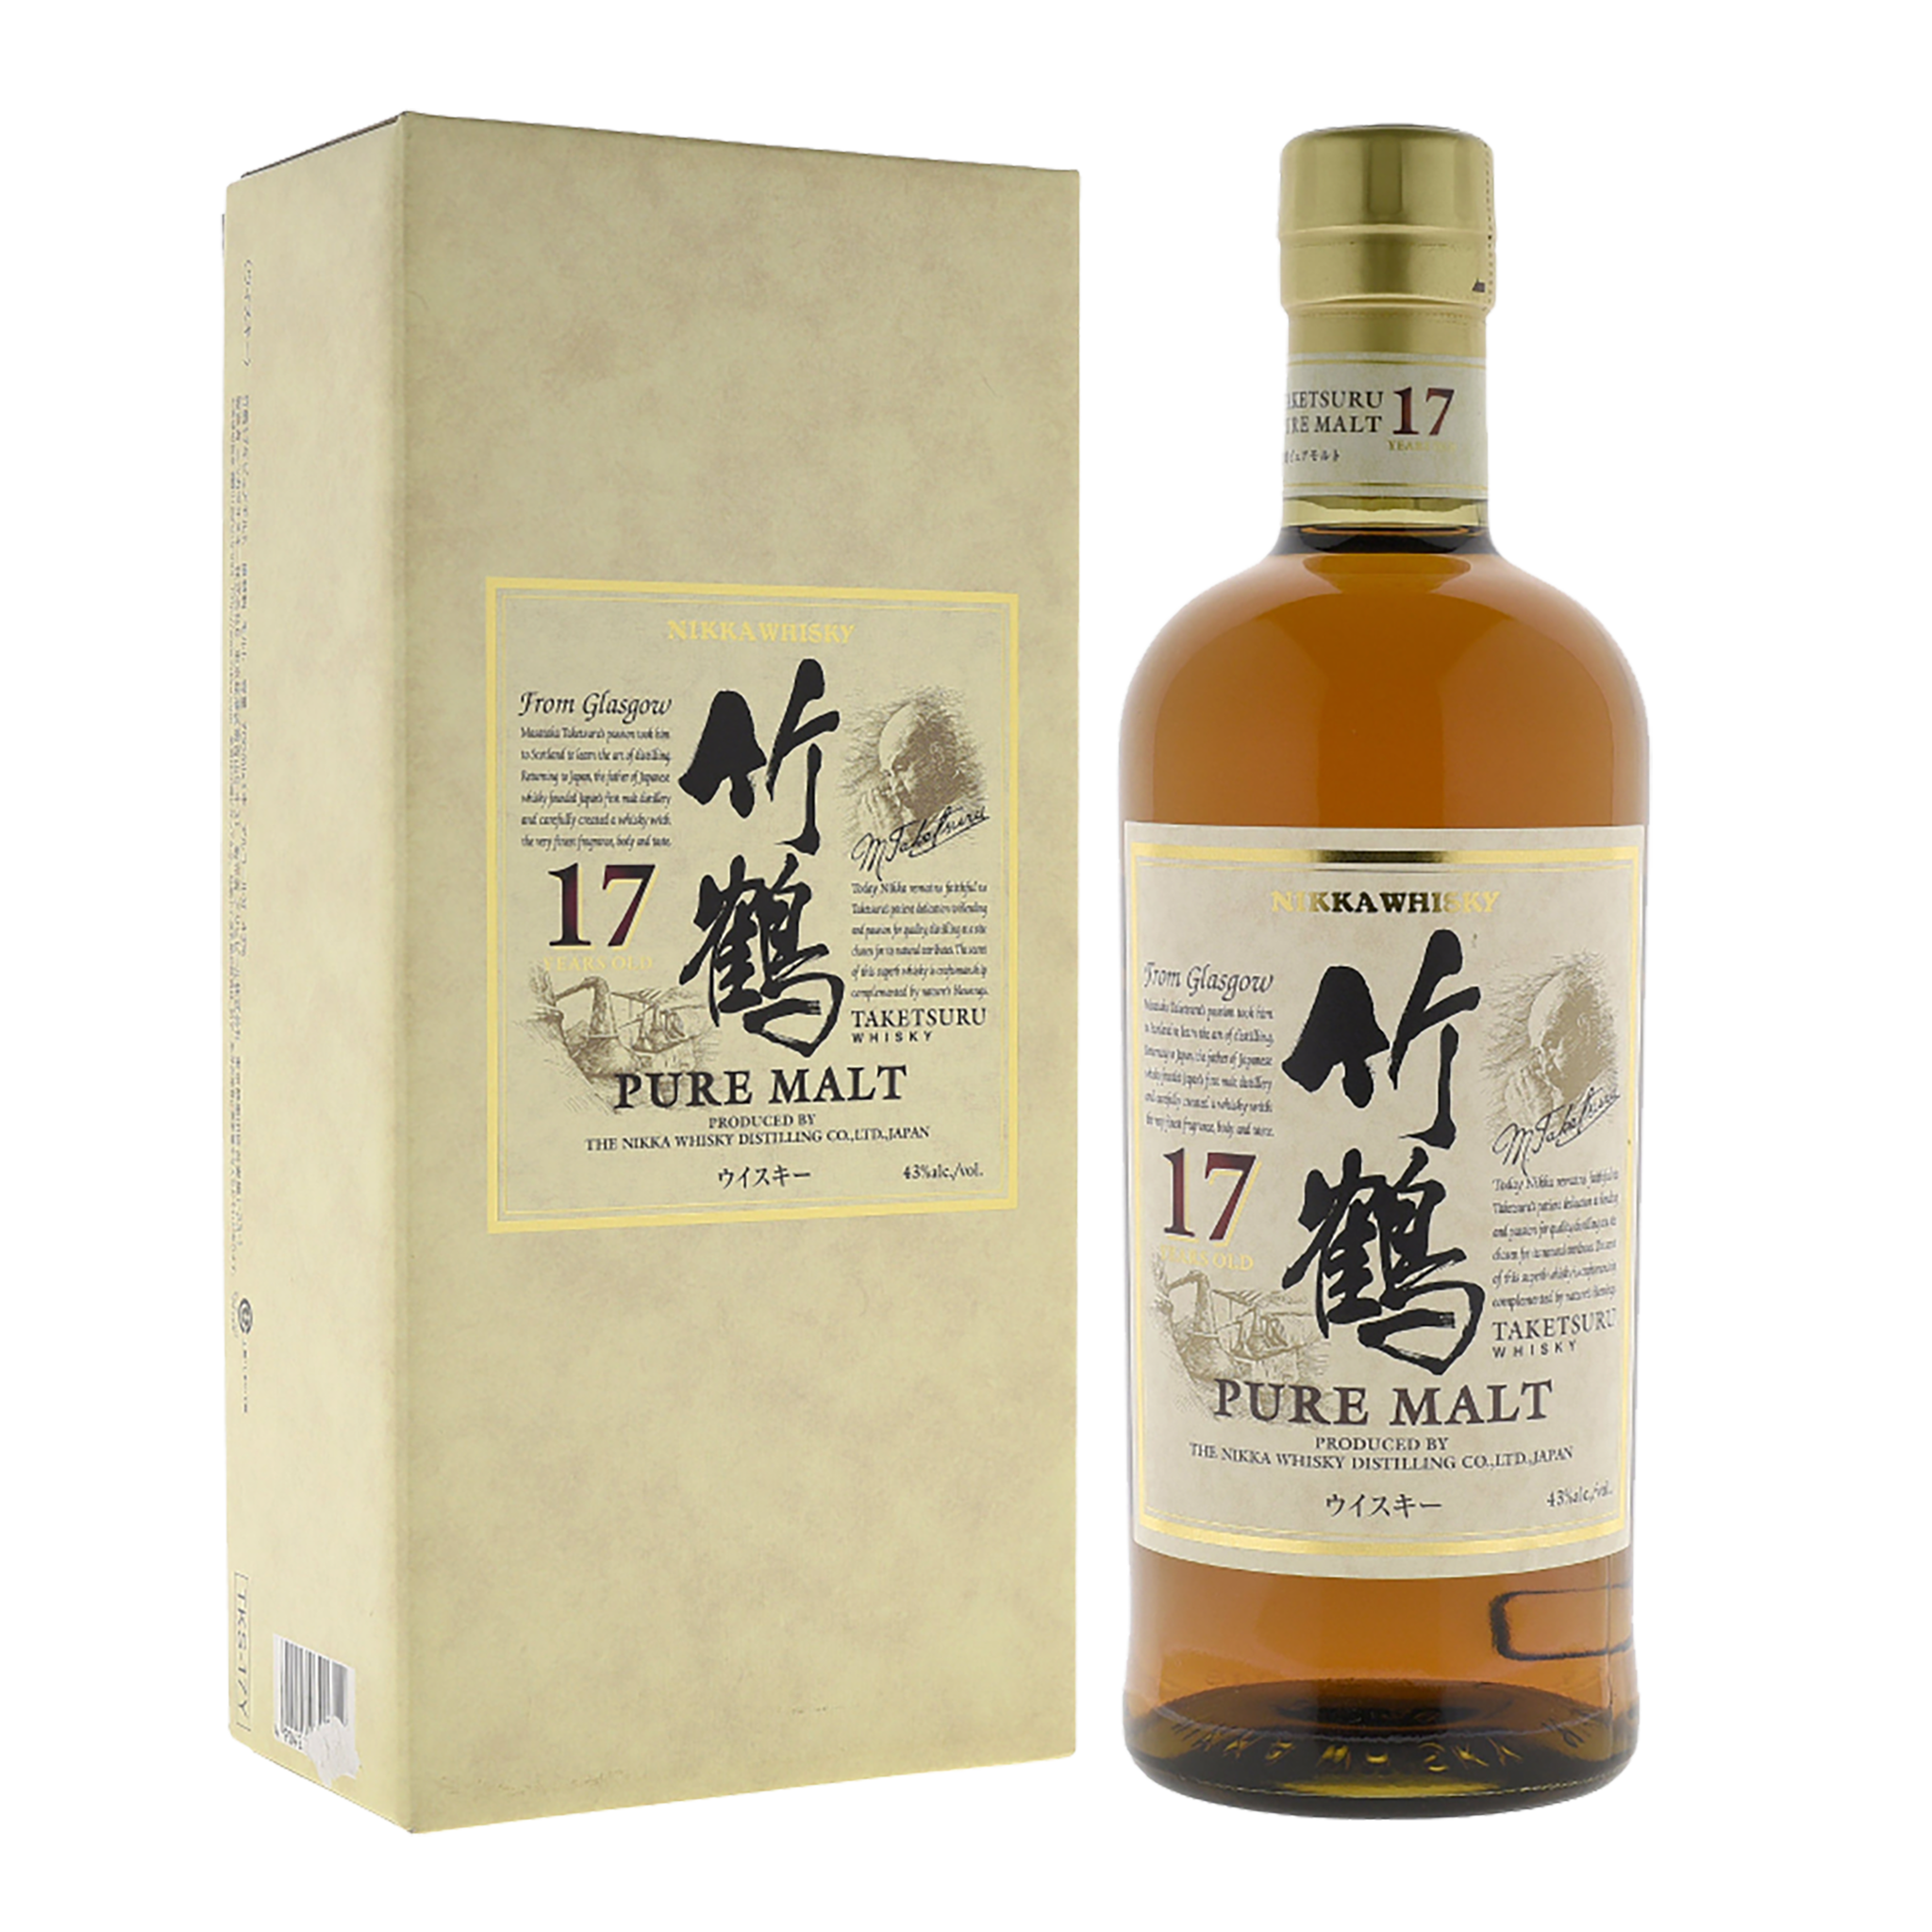 Nikka Taketsuru Pure Malt 17 Year Old Blended Malt Japanese Whisky 700ml - Kent Street cellars